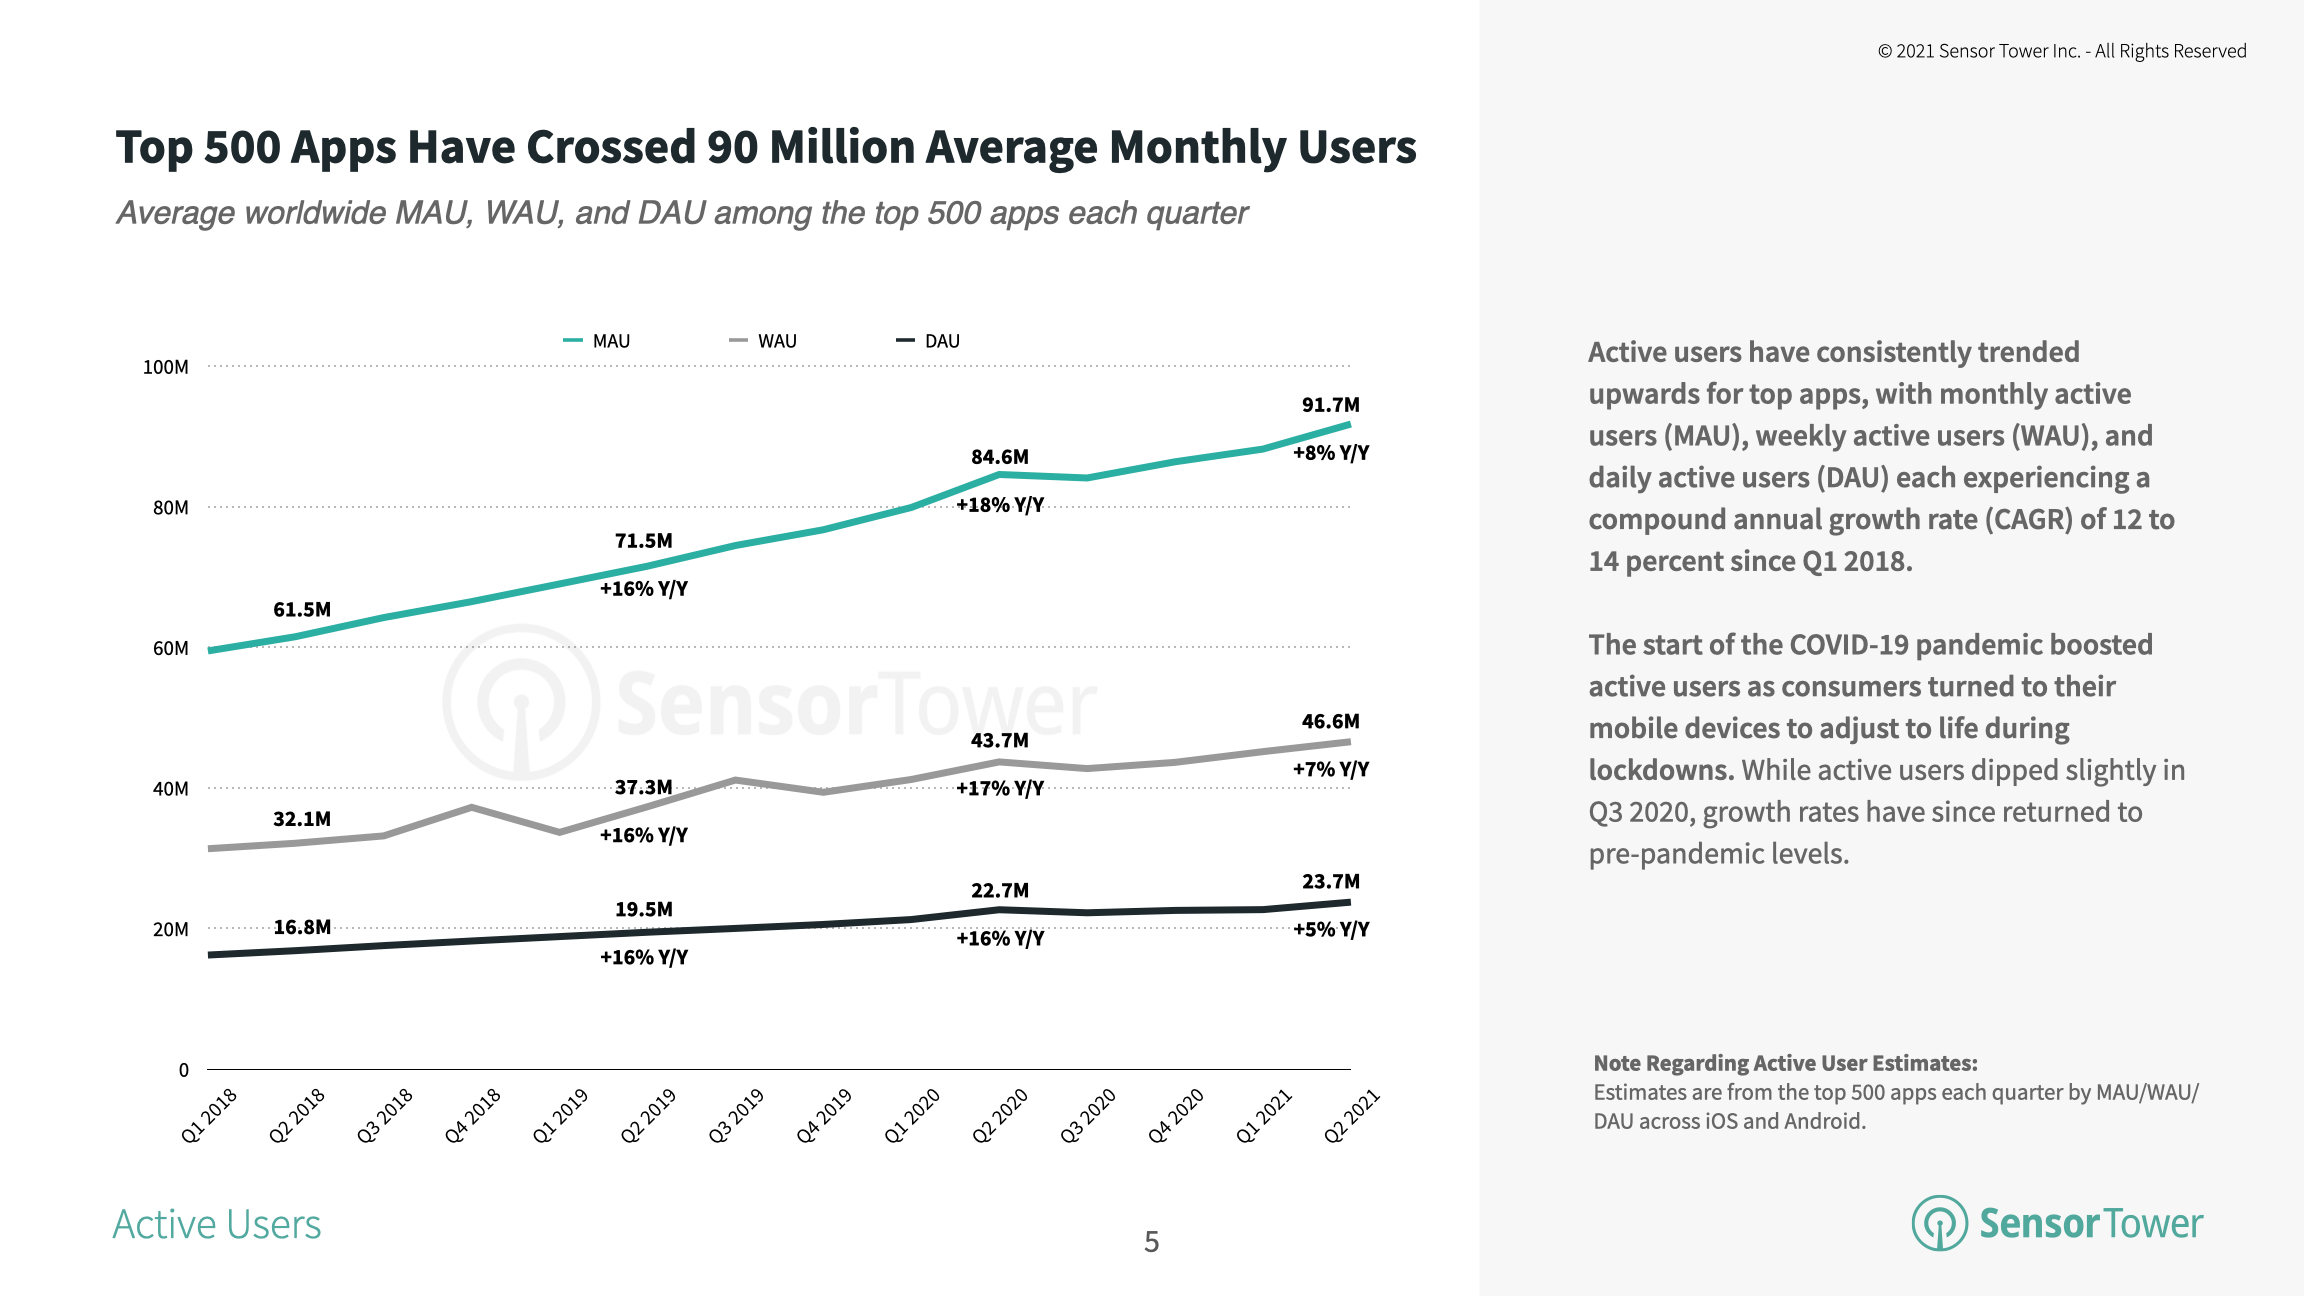 The average MAU of the top 500 apps worldwide grew 8 percent year-over-year in Q2 2021.